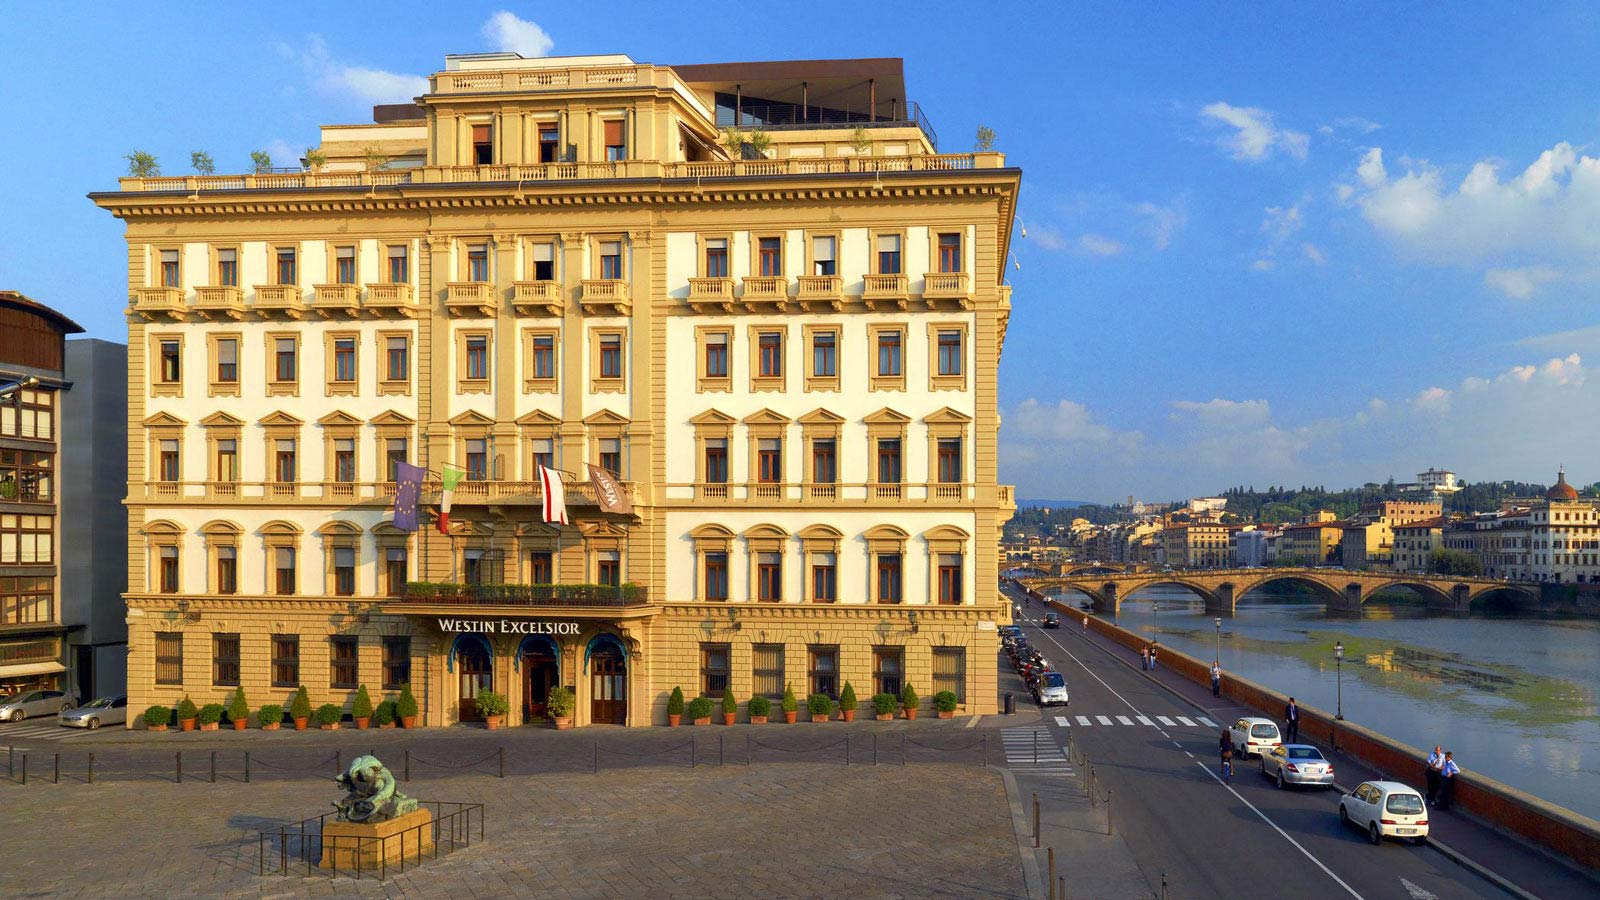 Westin Excelsior Hotel Florence, Italy